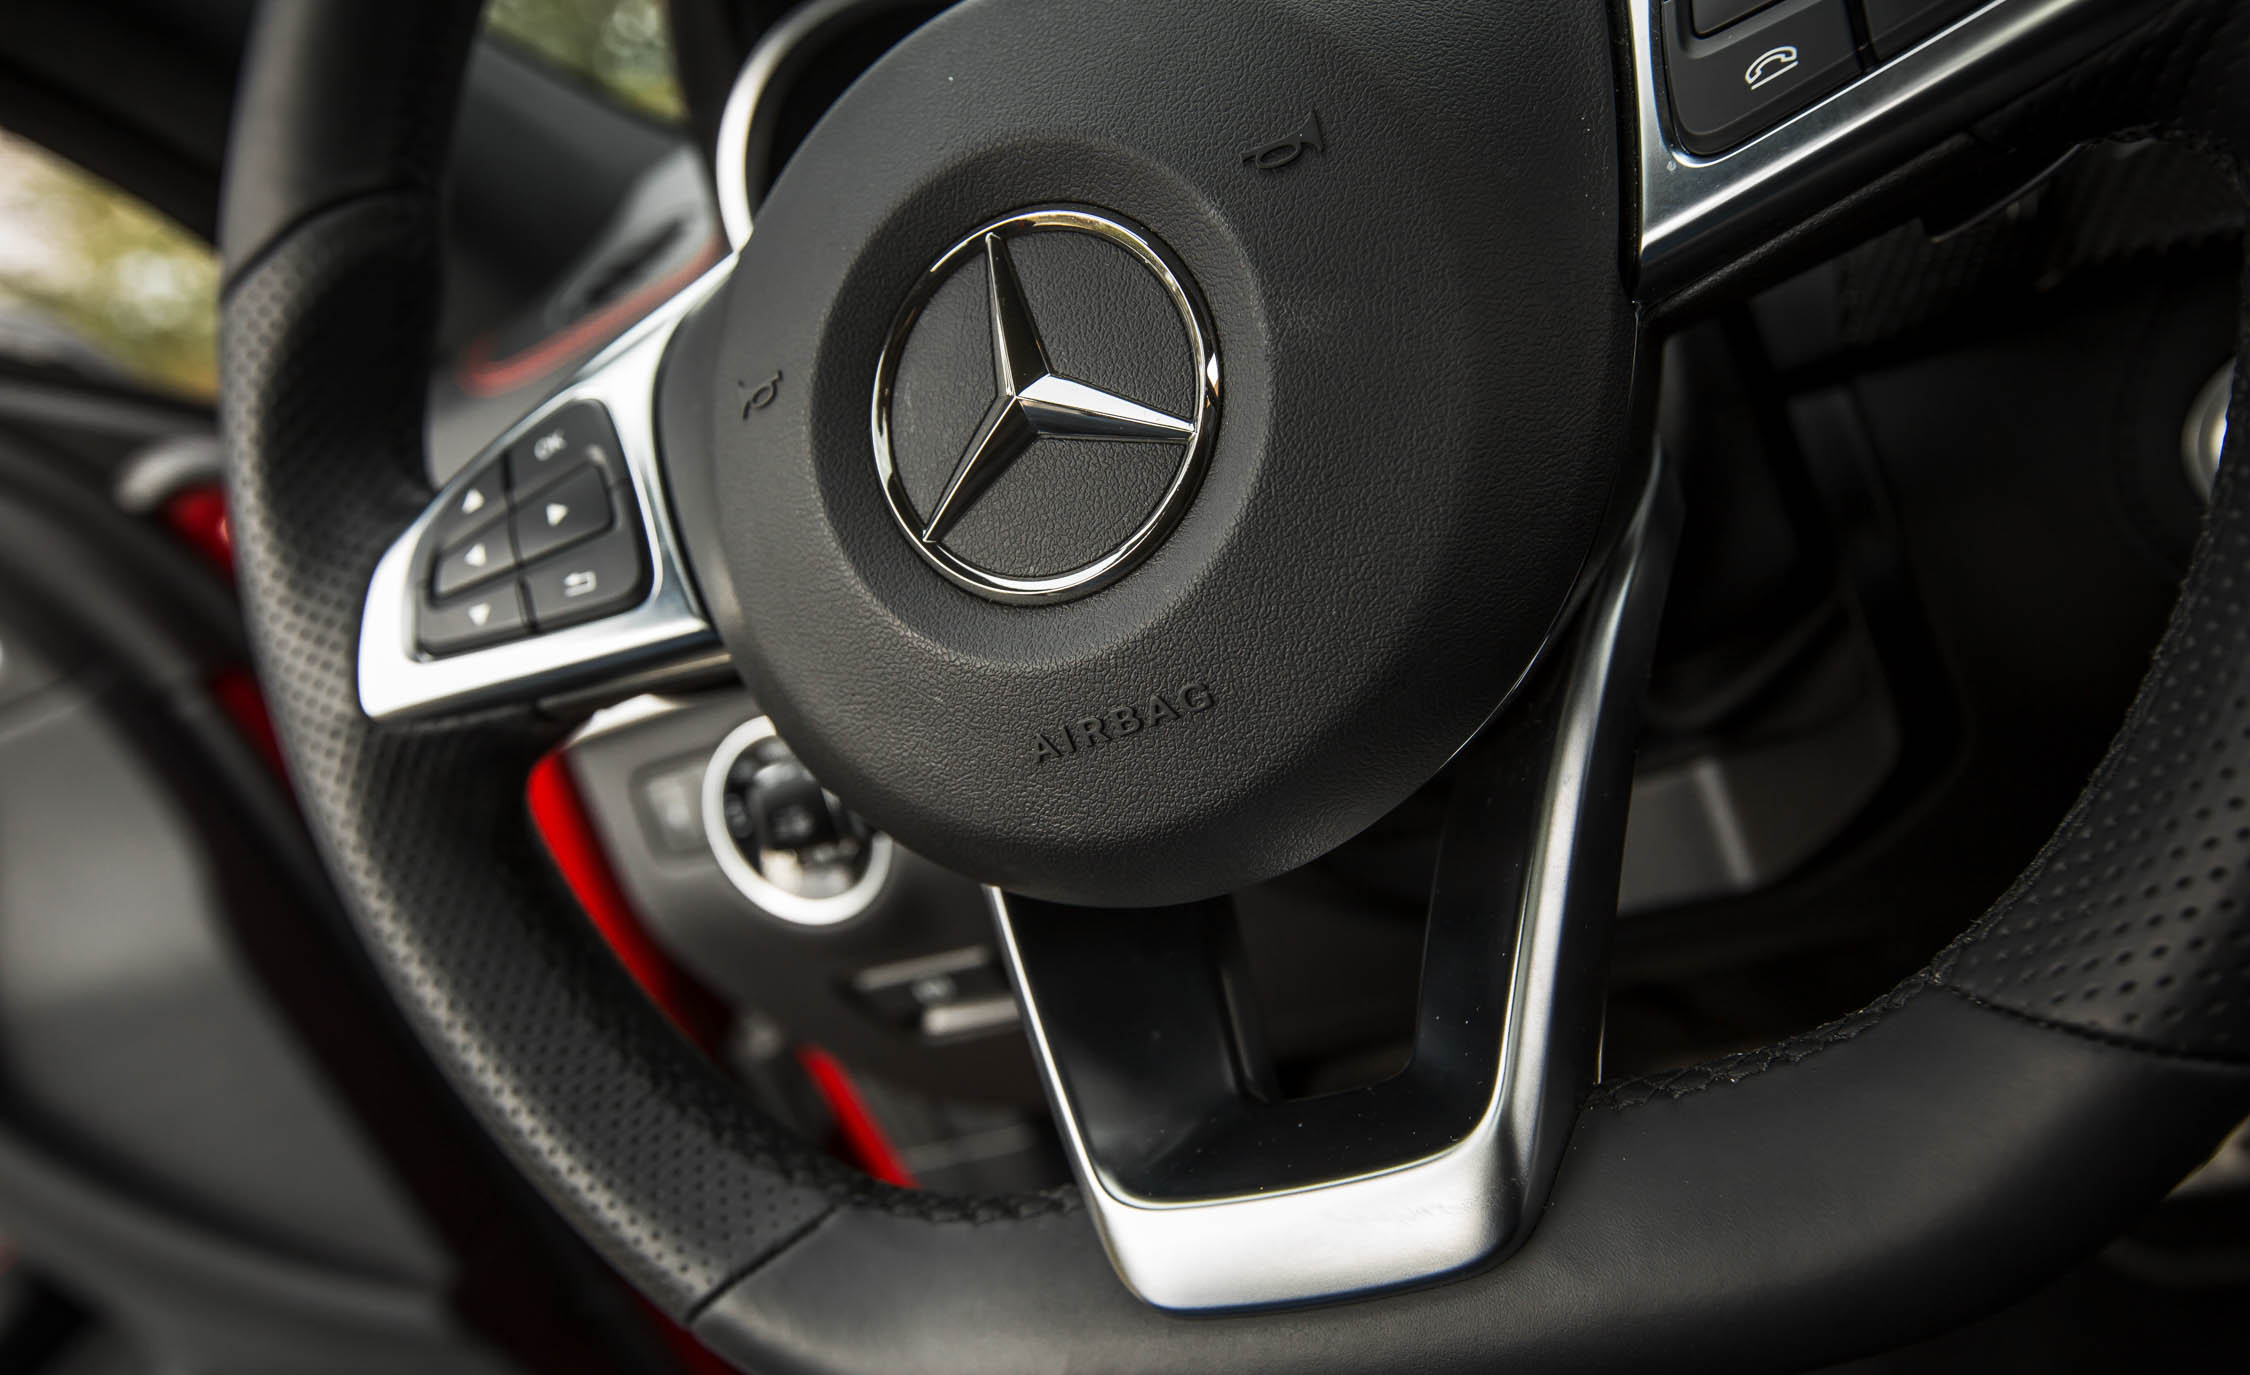 Steering Mercedes-Benz GLE450 AMG Coupe 2016